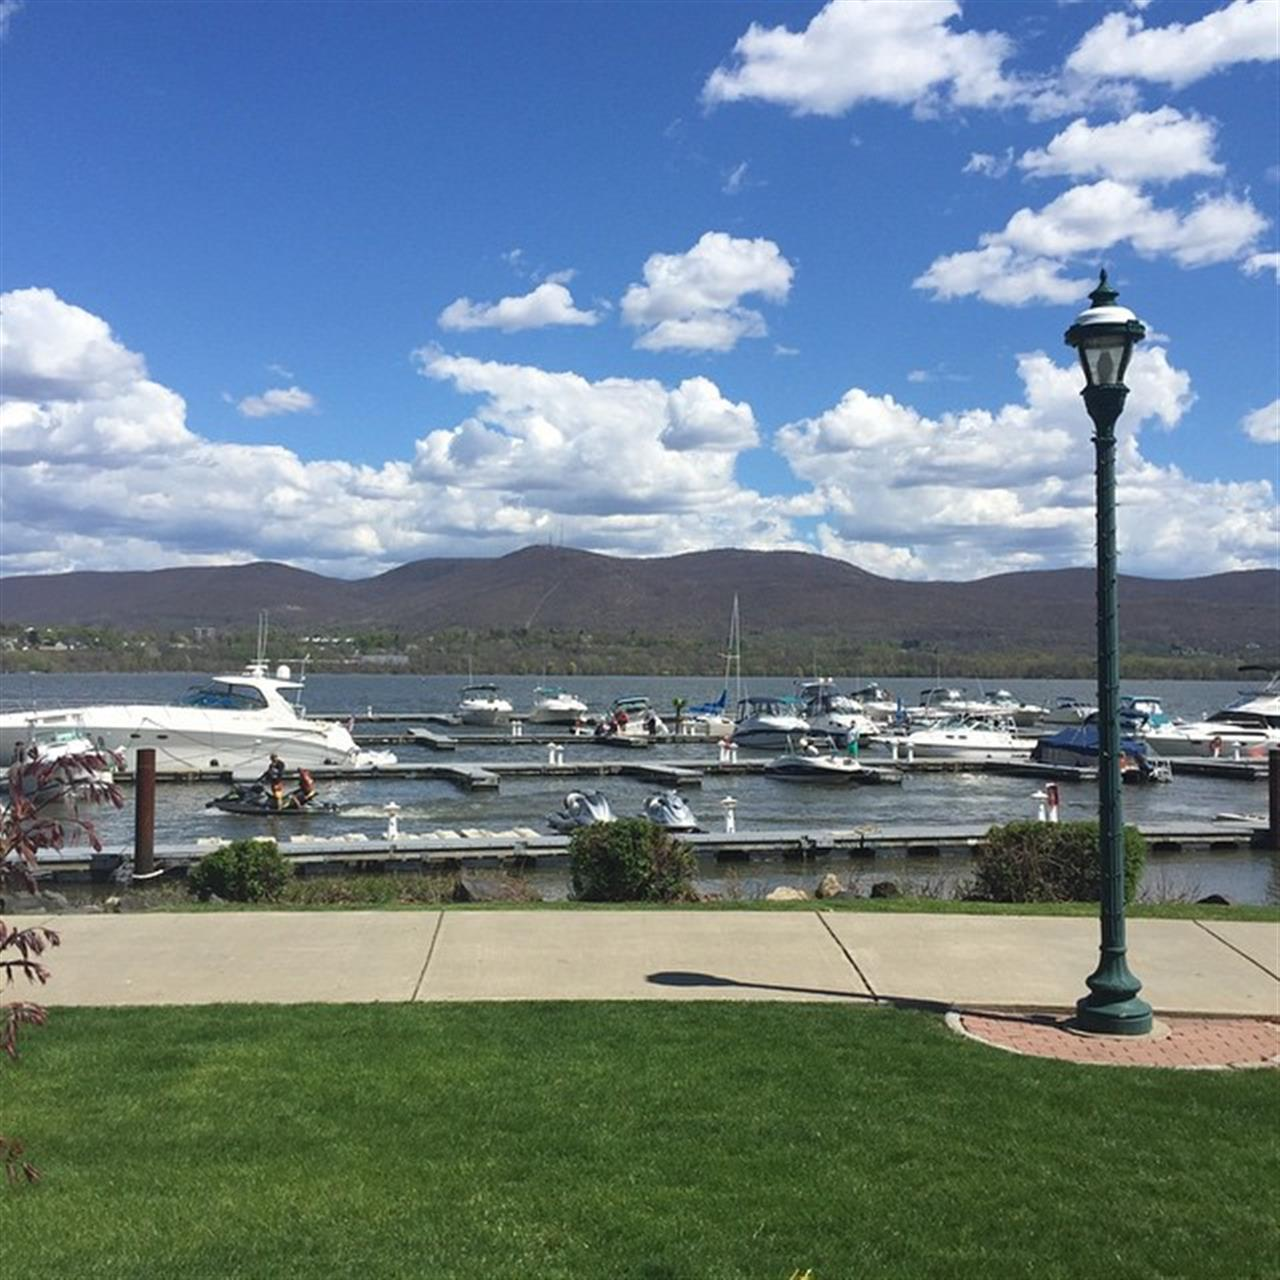 Gorgeous day to enjoy the #Newburgh waterfront. Cocktails, appetizers and lots of sunshine and fresh air! Finally! #LeadingRELocal